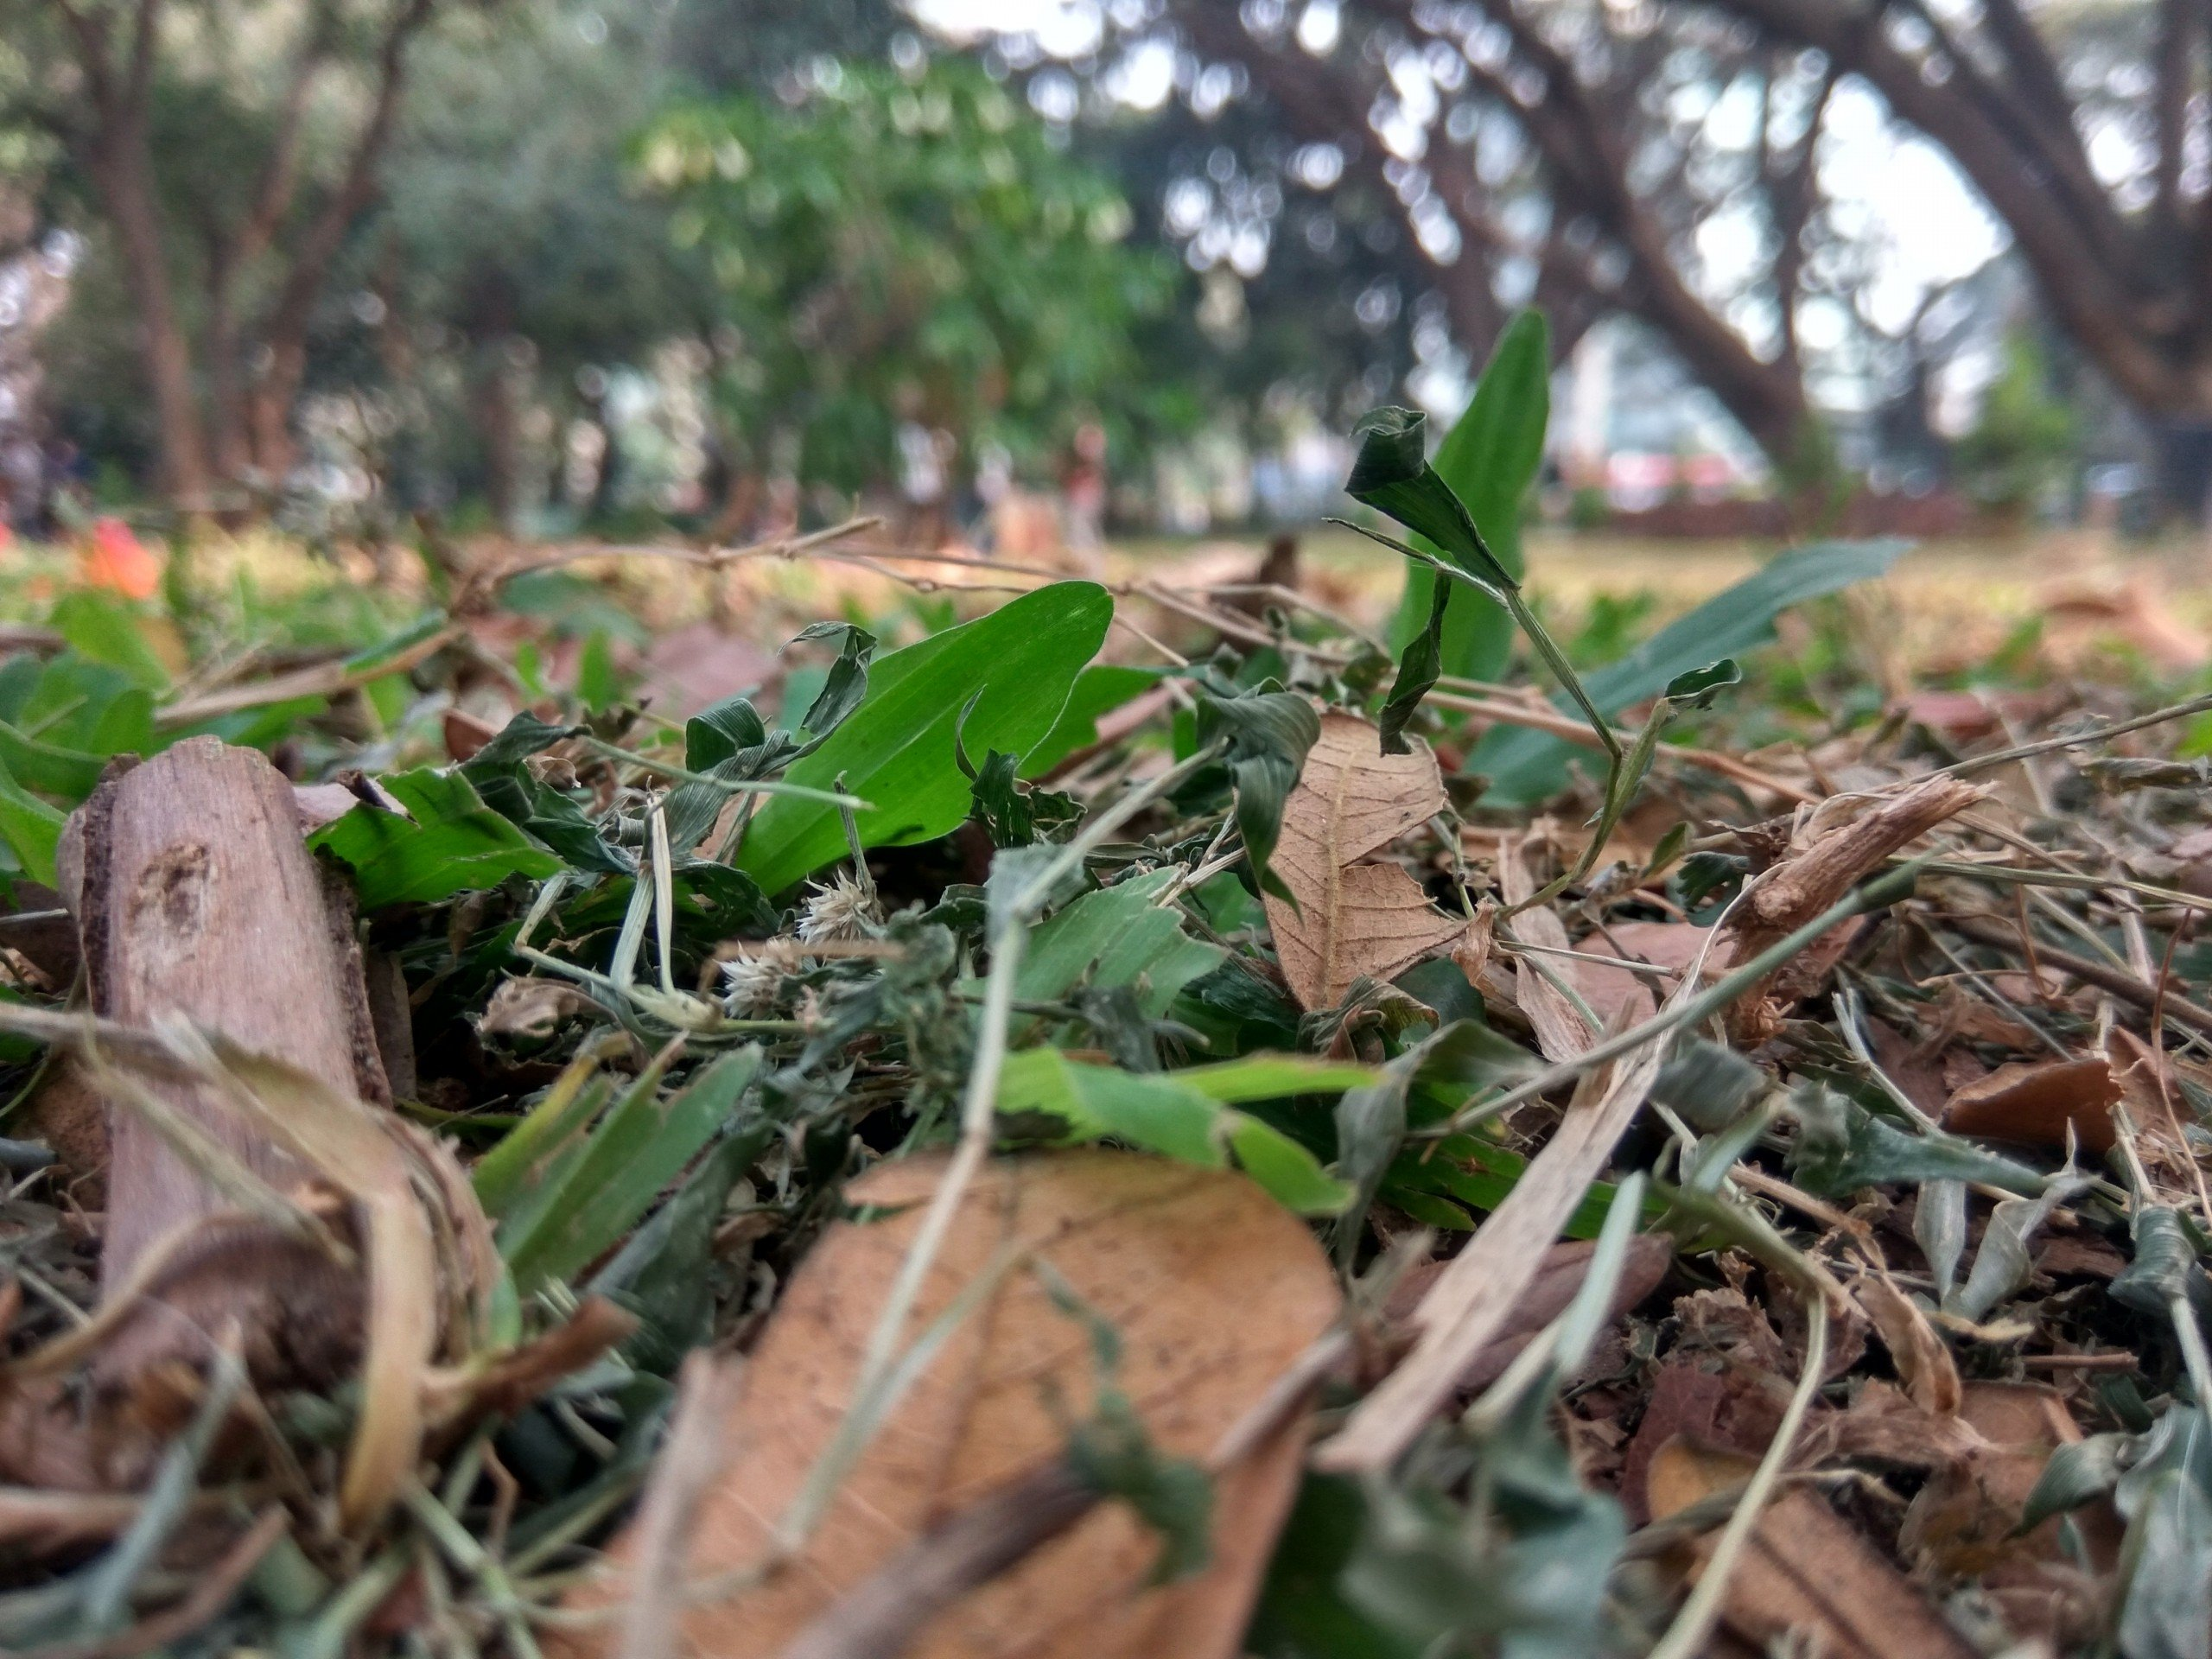 Some dry leaves and grass